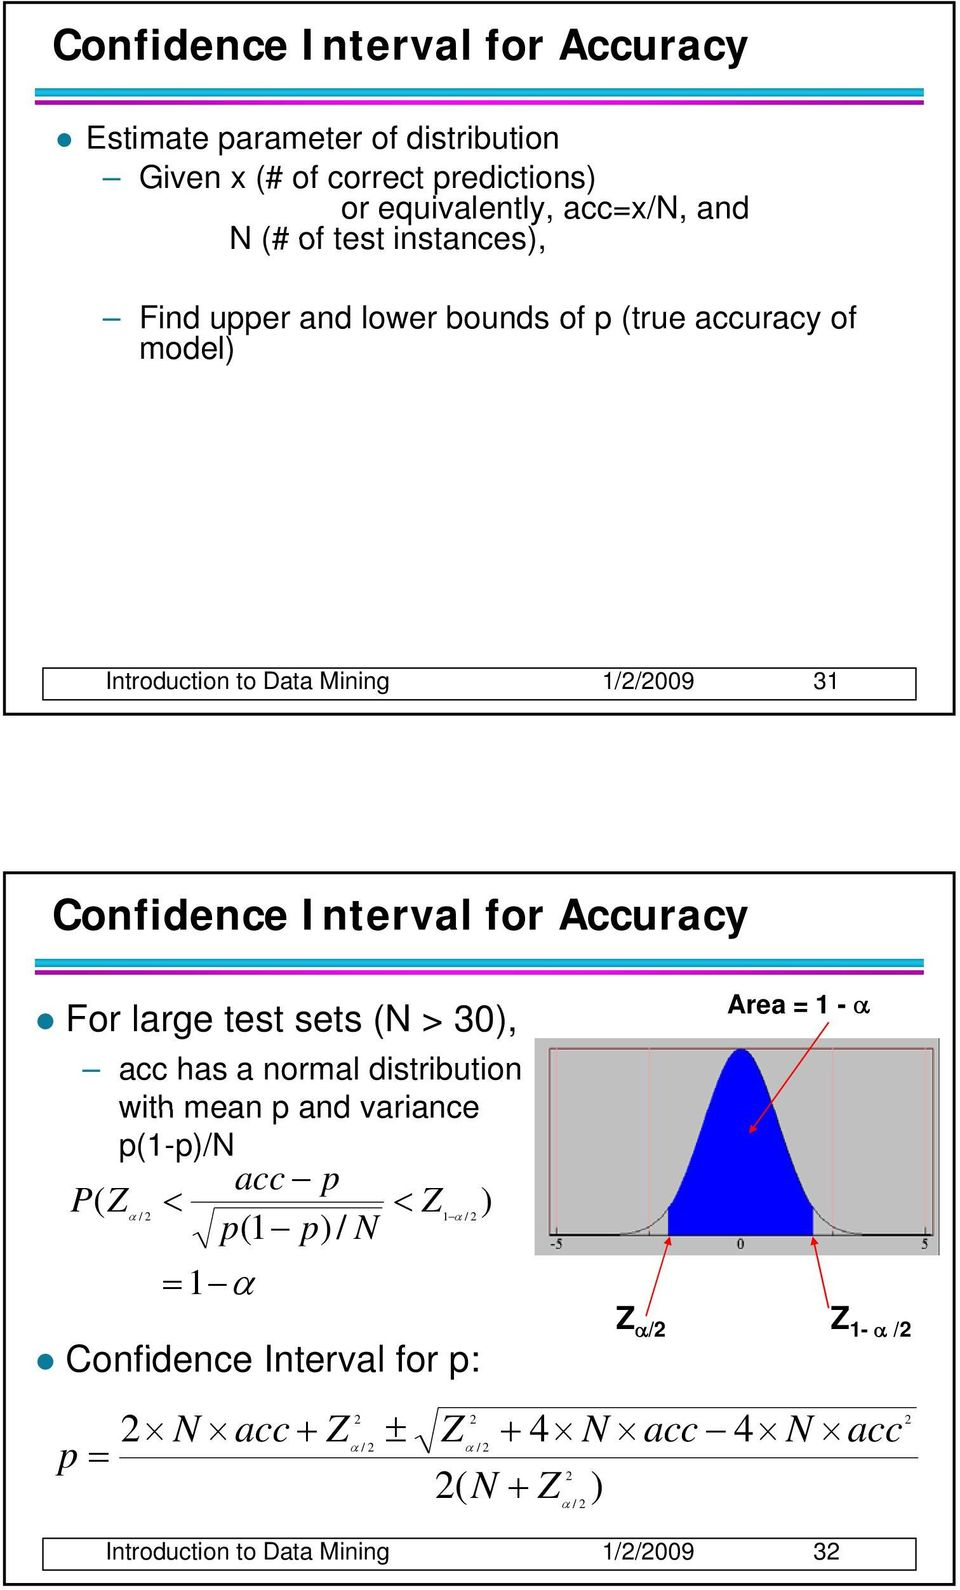 Accuracy Area = 1 - α For large test sets (N > 30), acc has a normal distribution with mean p and variance p(1-p)/n ( acc p P Z < < Z ) α / 1 α